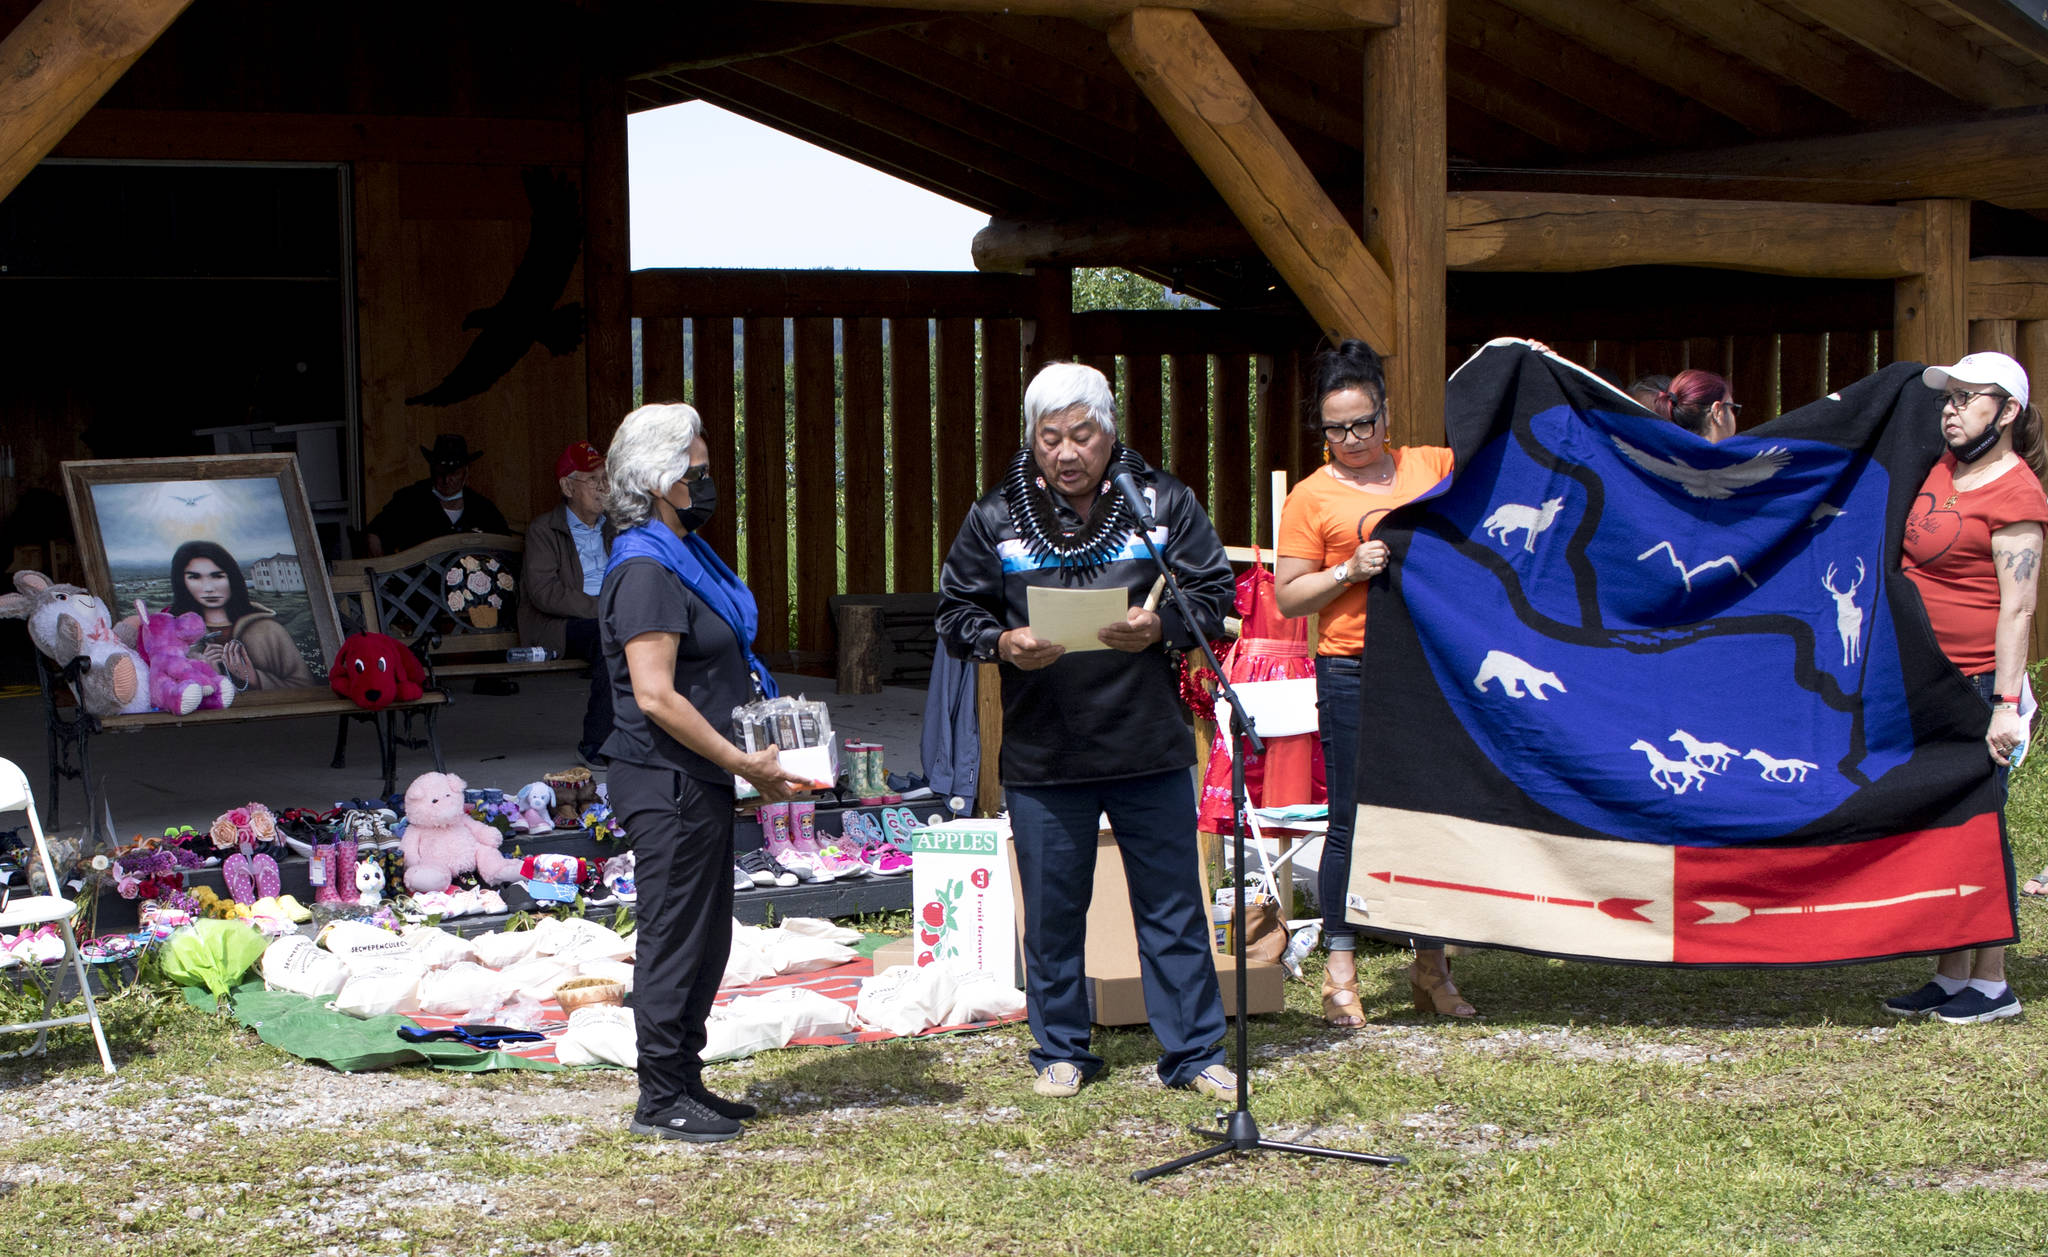 During the closing ceremony on June 20, Chiefs of different First Nation communities including Stellat'en First Nation, Nadleh Whut'en, Saik'uz First Nation, Lake Babine Nation and others were honoured with gifts. (Aman Parhar/Omineca Express)